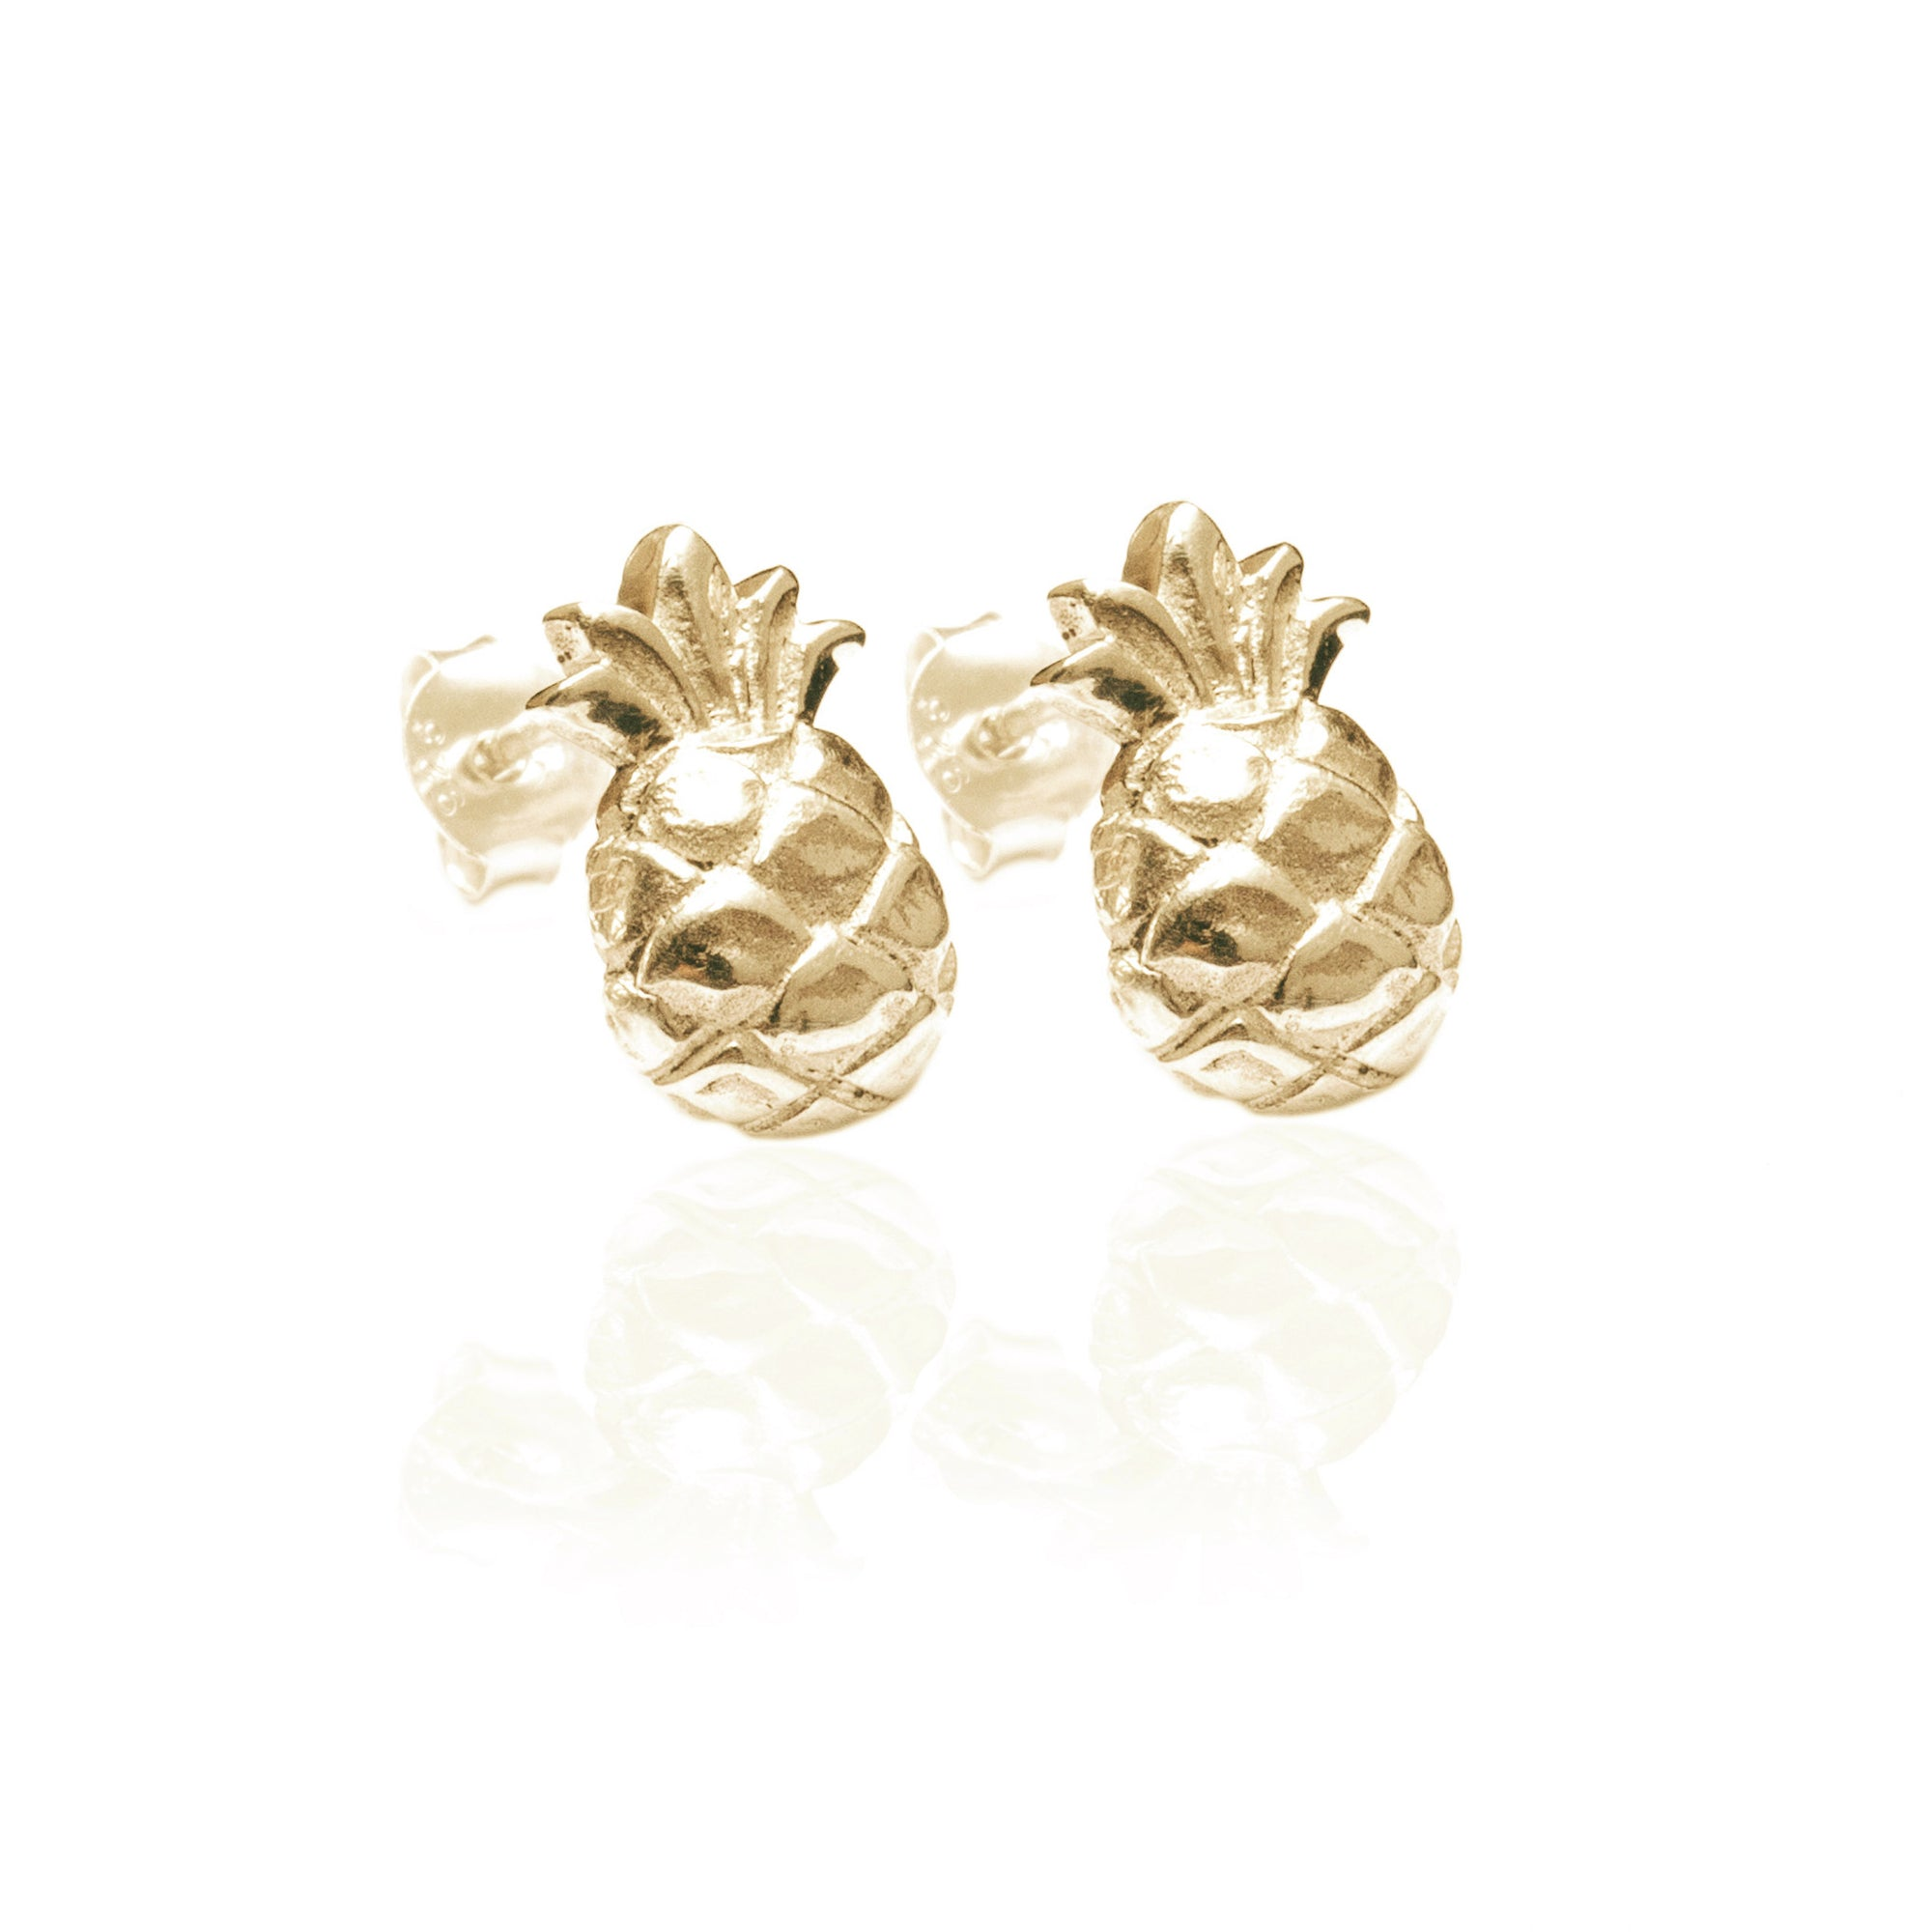 Luna & Rose - Pineapple Earrings Gold